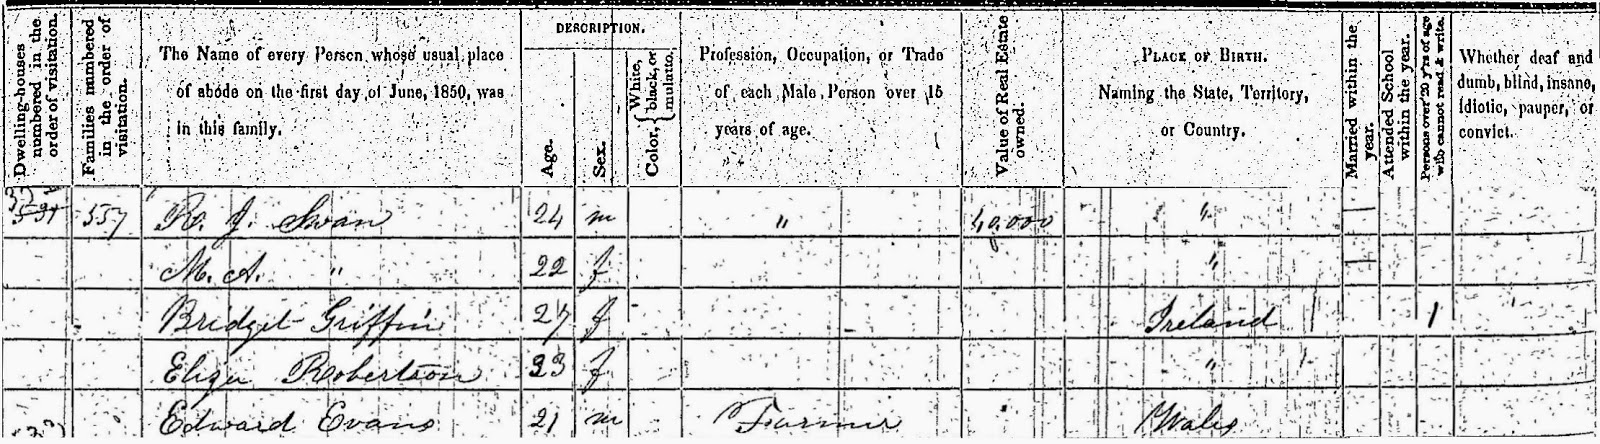 image of 1850 census listing for Swan Family